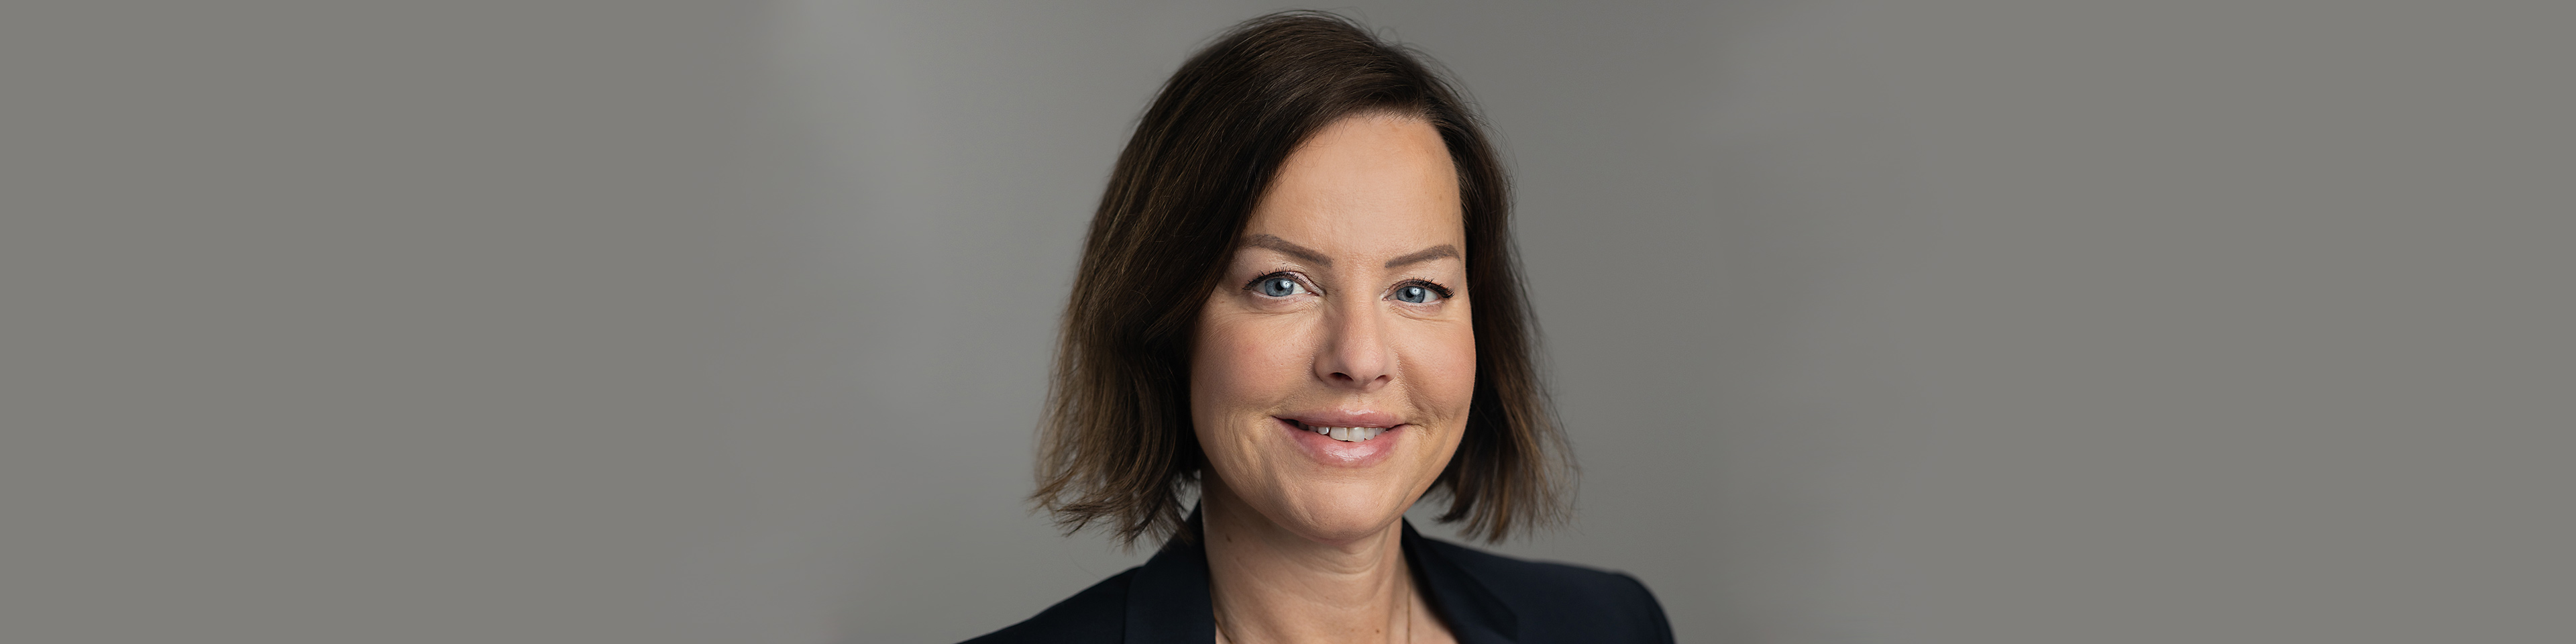 Malin Svanberg ny Country Manager för Wolters Kluwer TAA Sweden